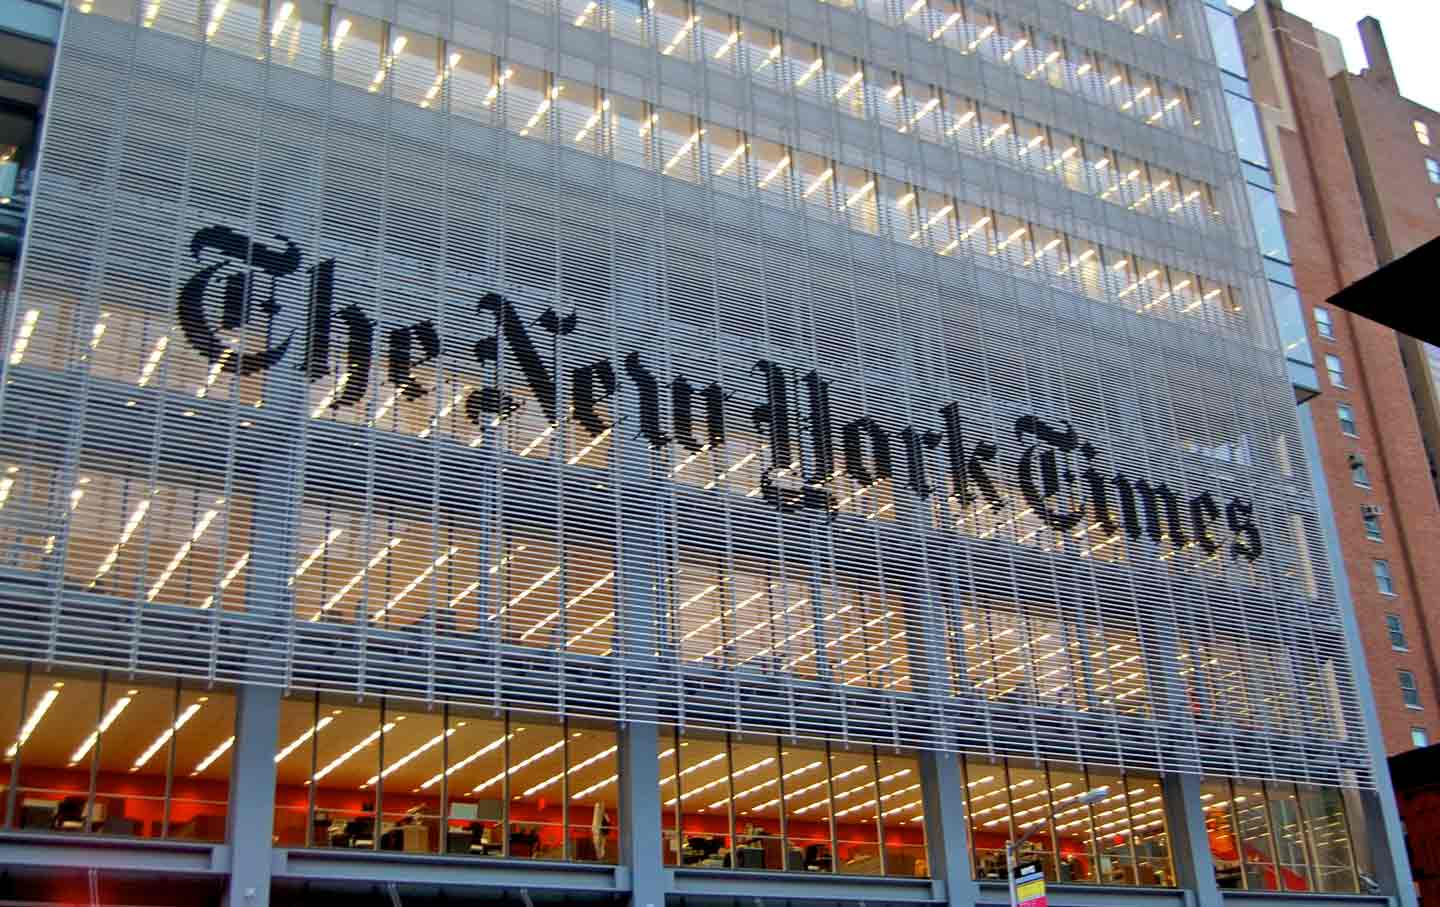 thenation.com - How 'The New York Times' Deceived the Public on North Korea